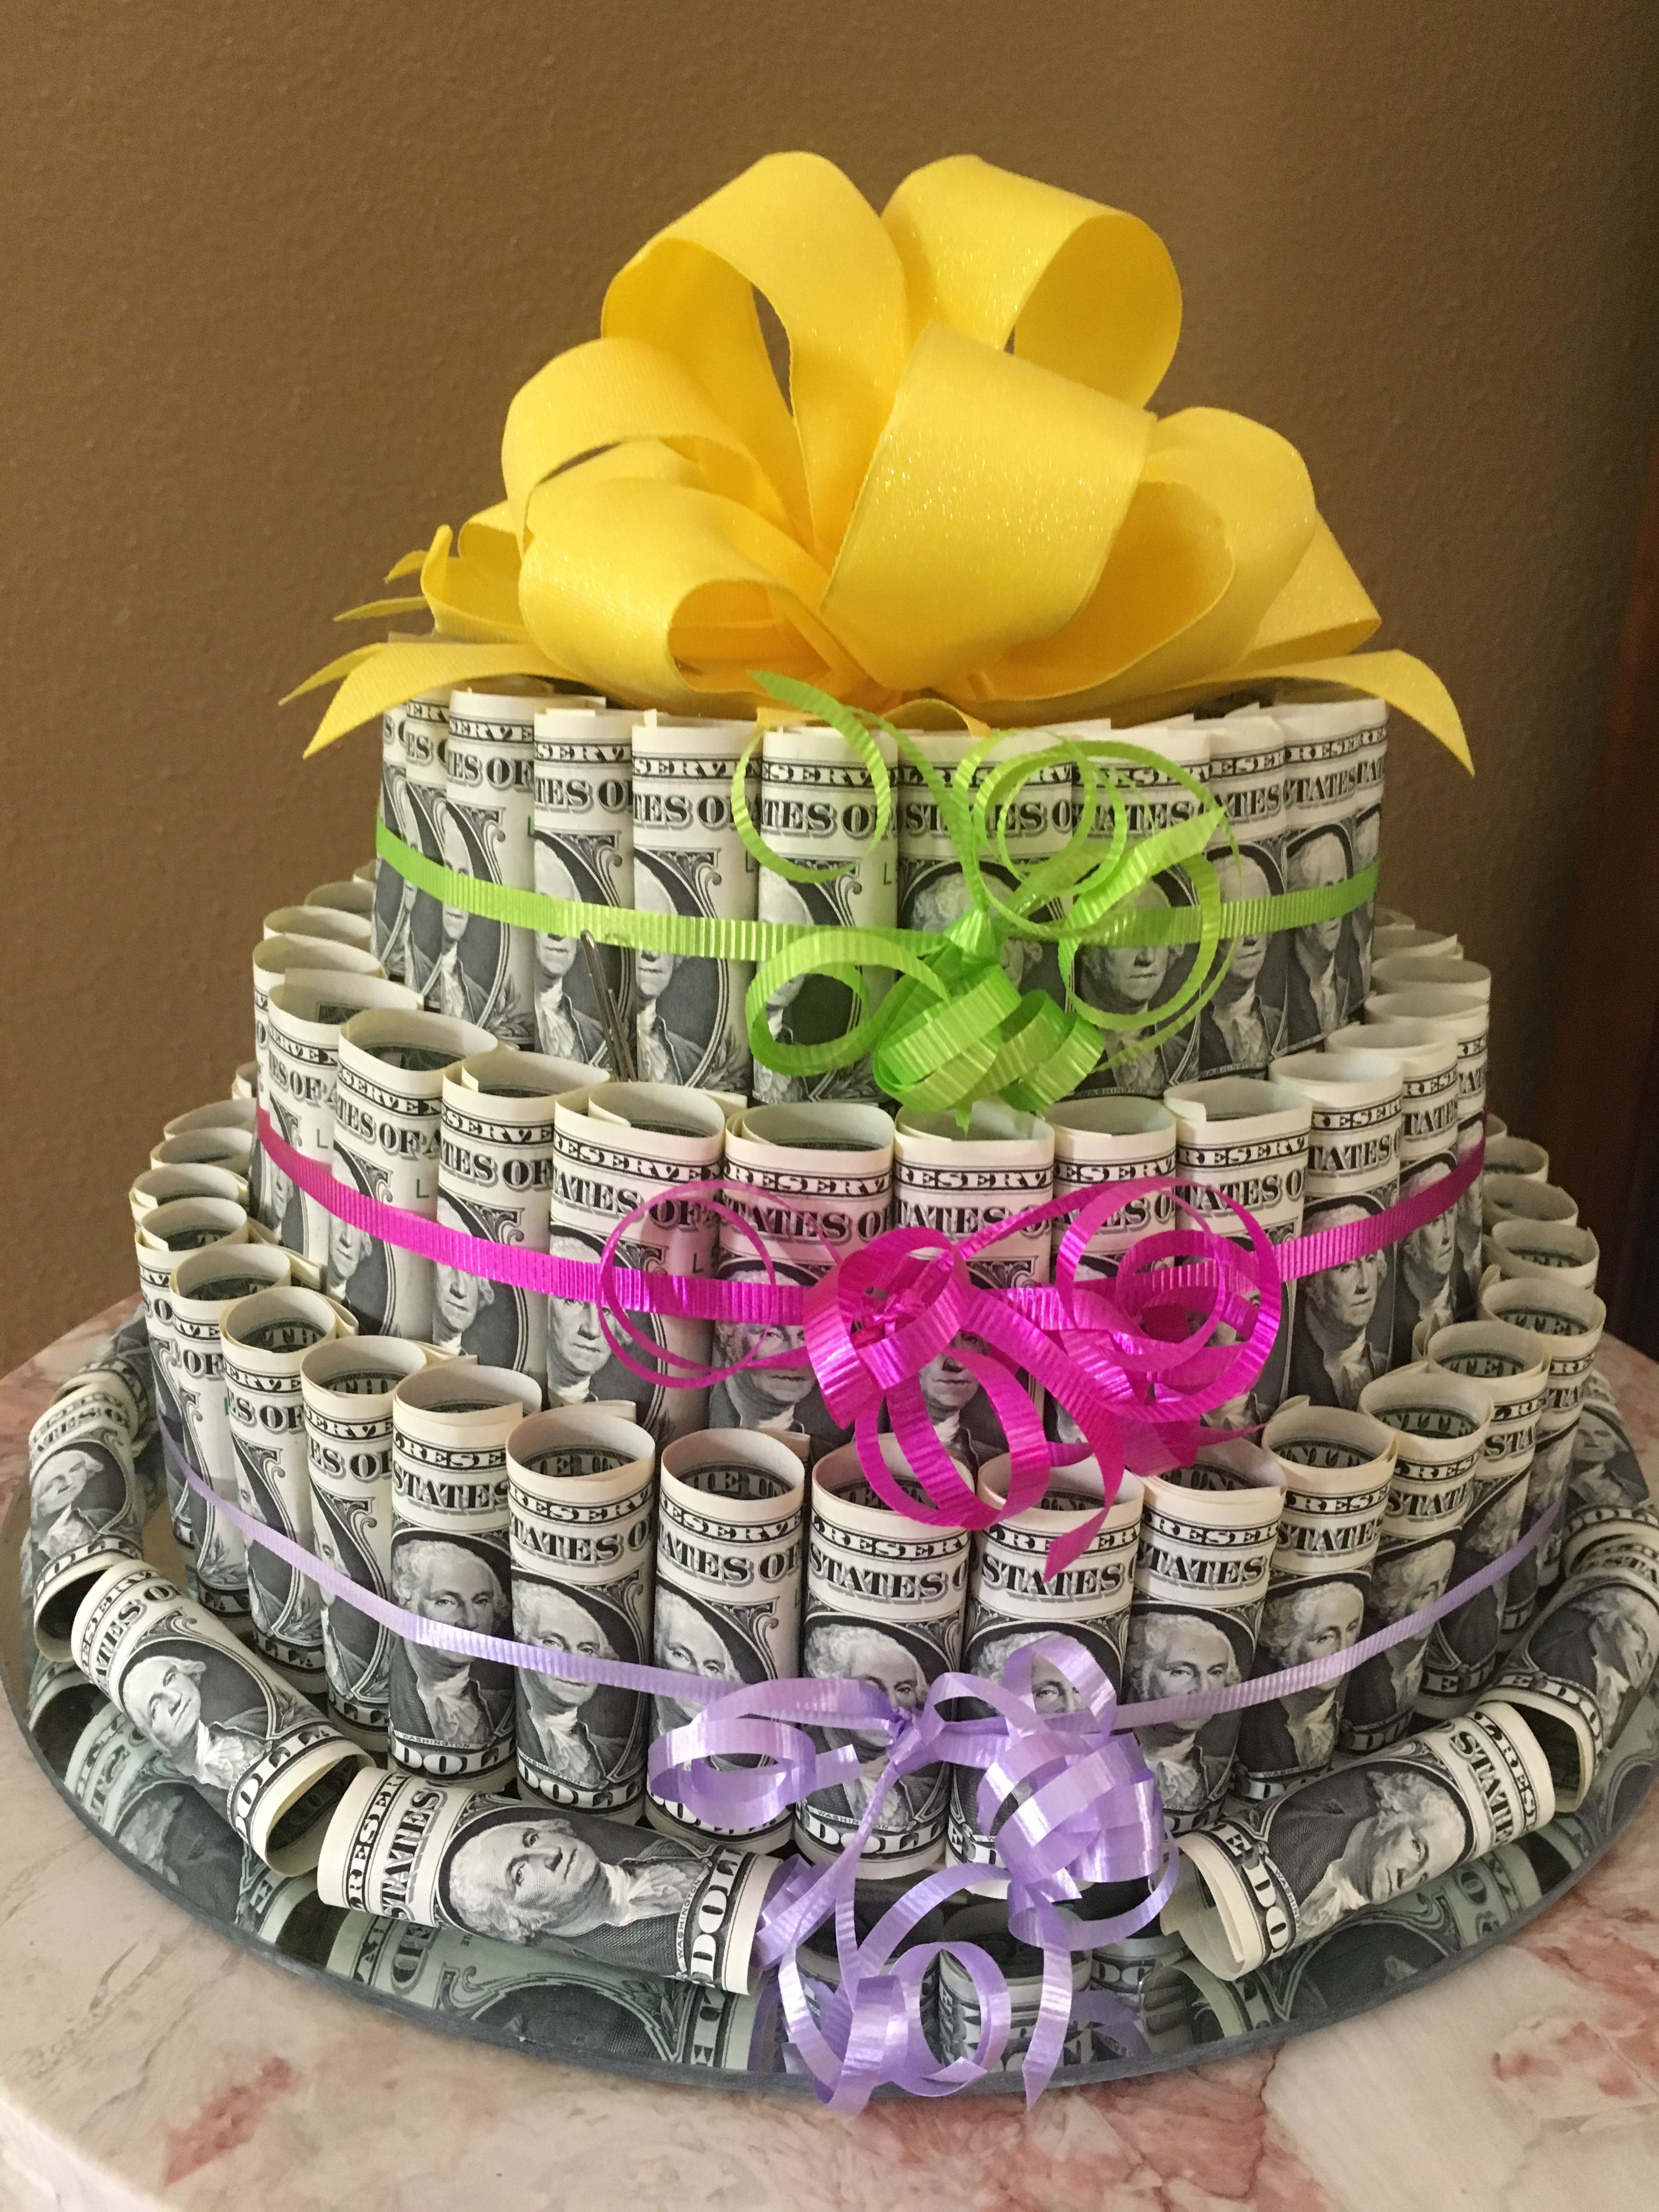 Pin by Judy Goble on Special cakes Gifts, Cake